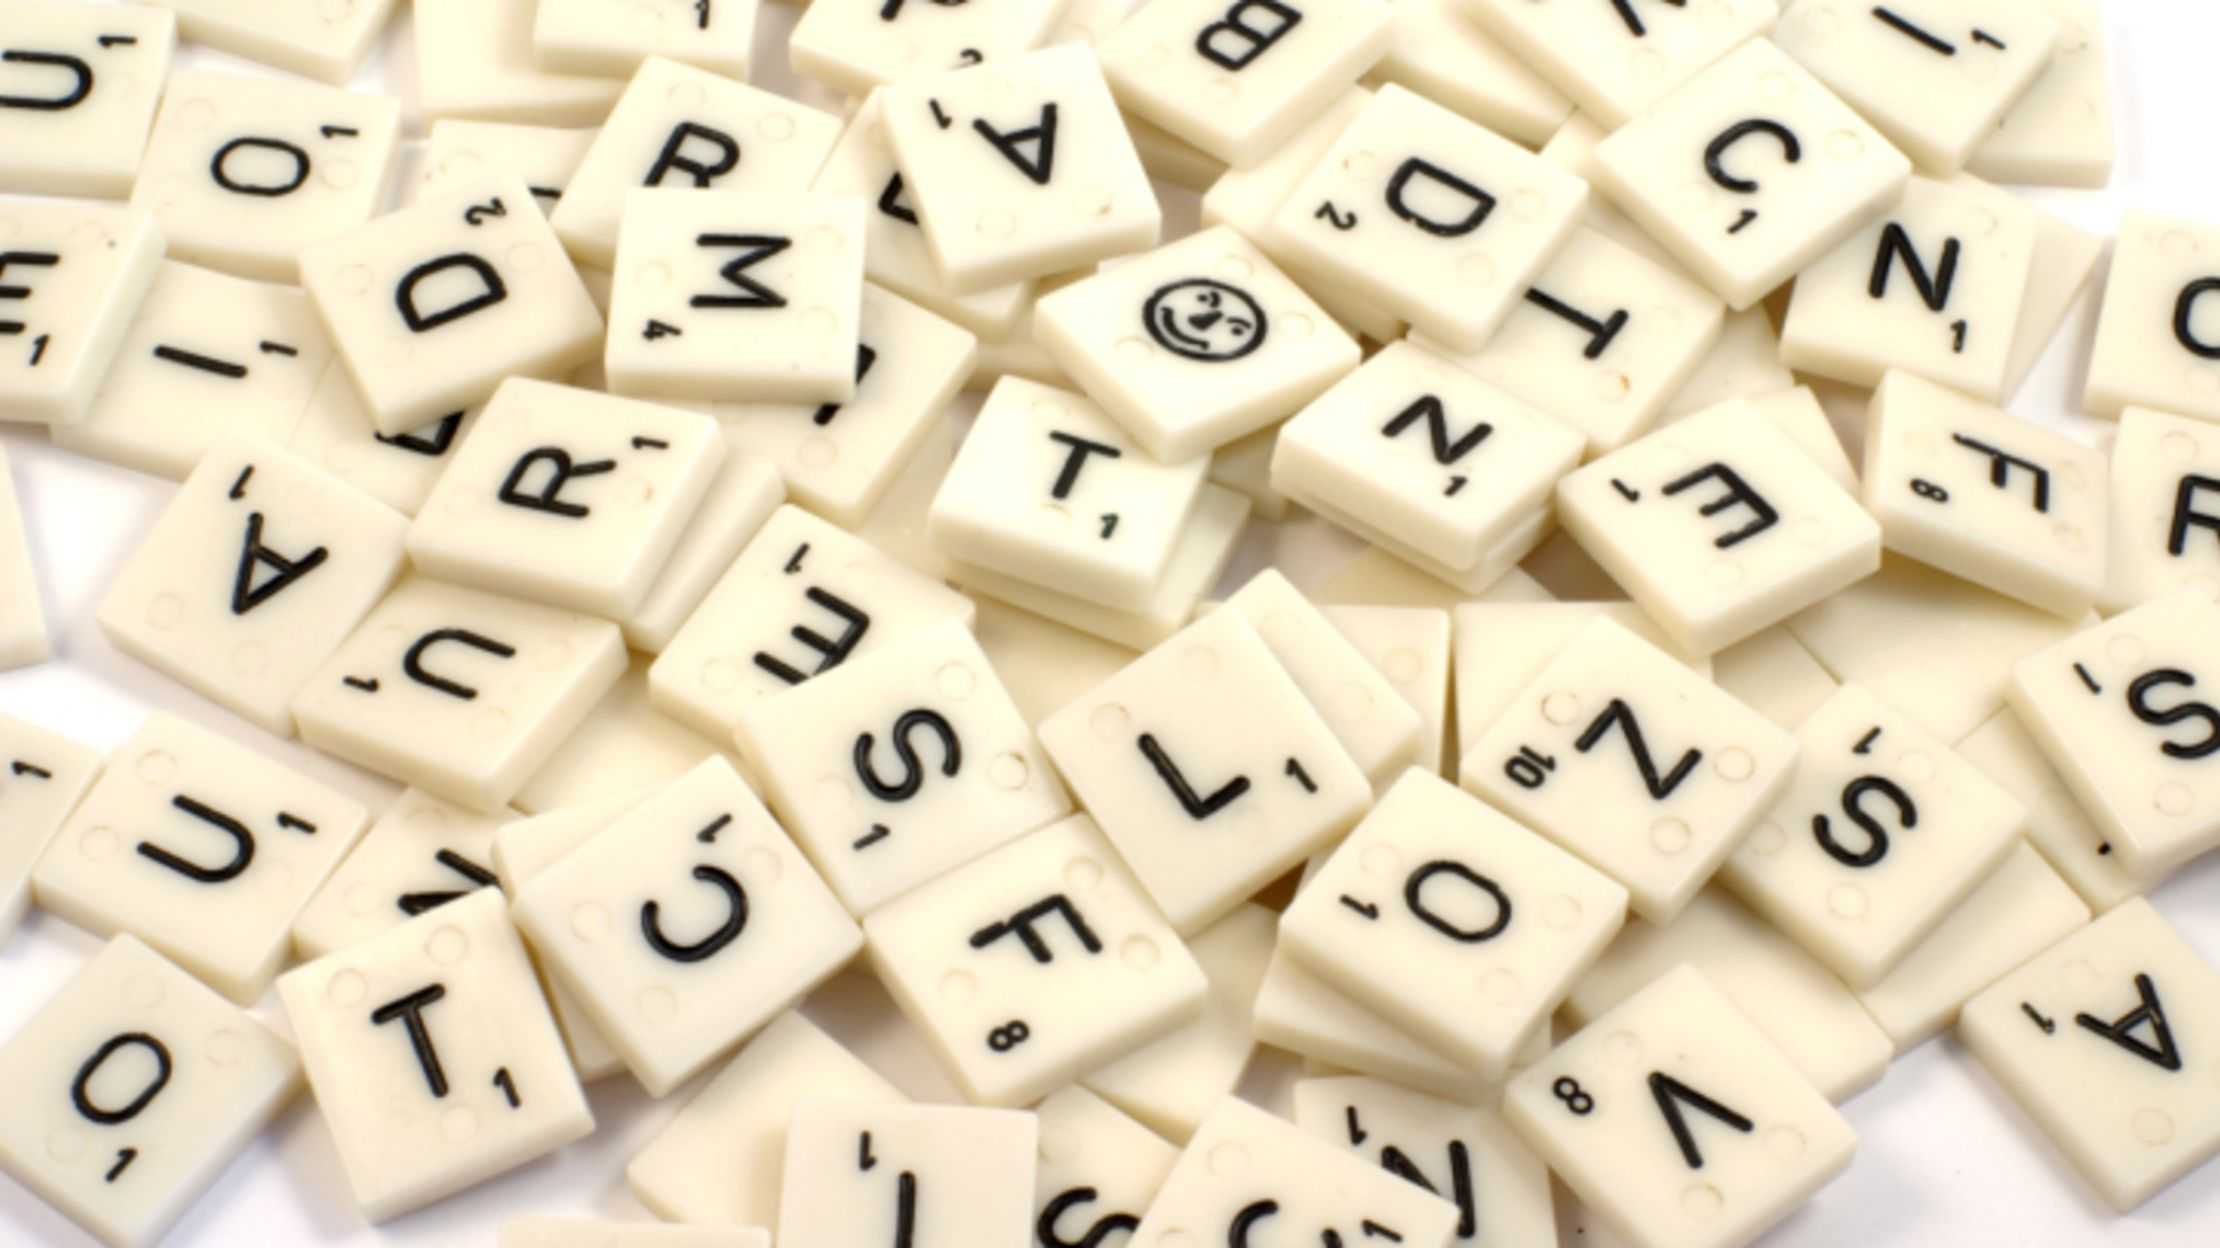 11 Names for Alphabetical Antics and Other Word Games | Mental Floss